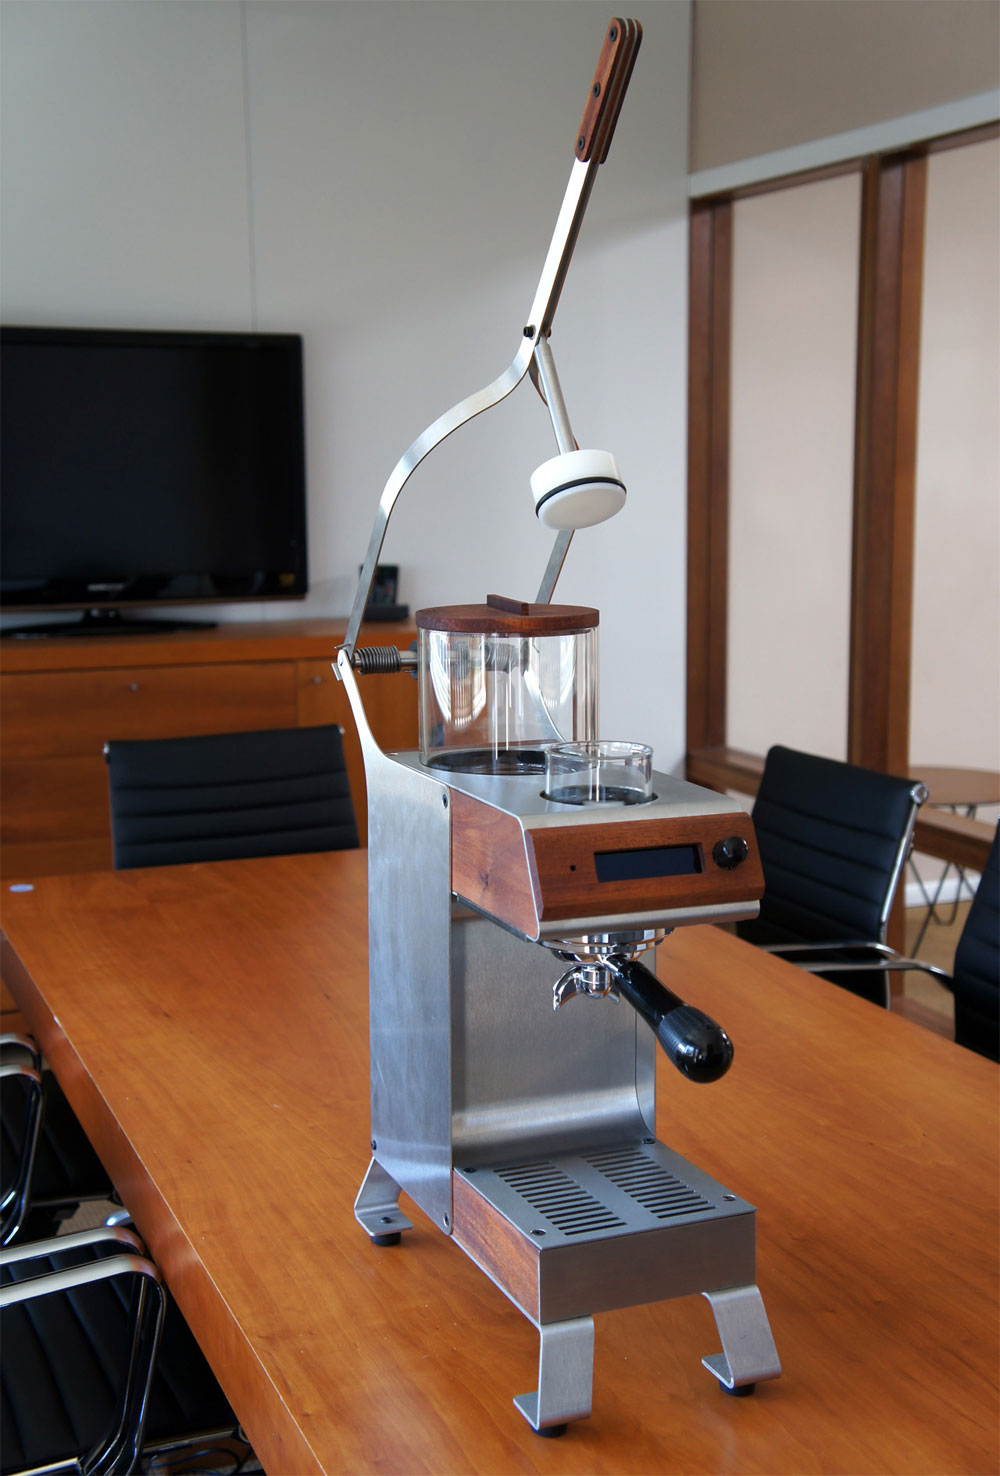 World's Most Expensive Coffee Maker – Blossom One Limited